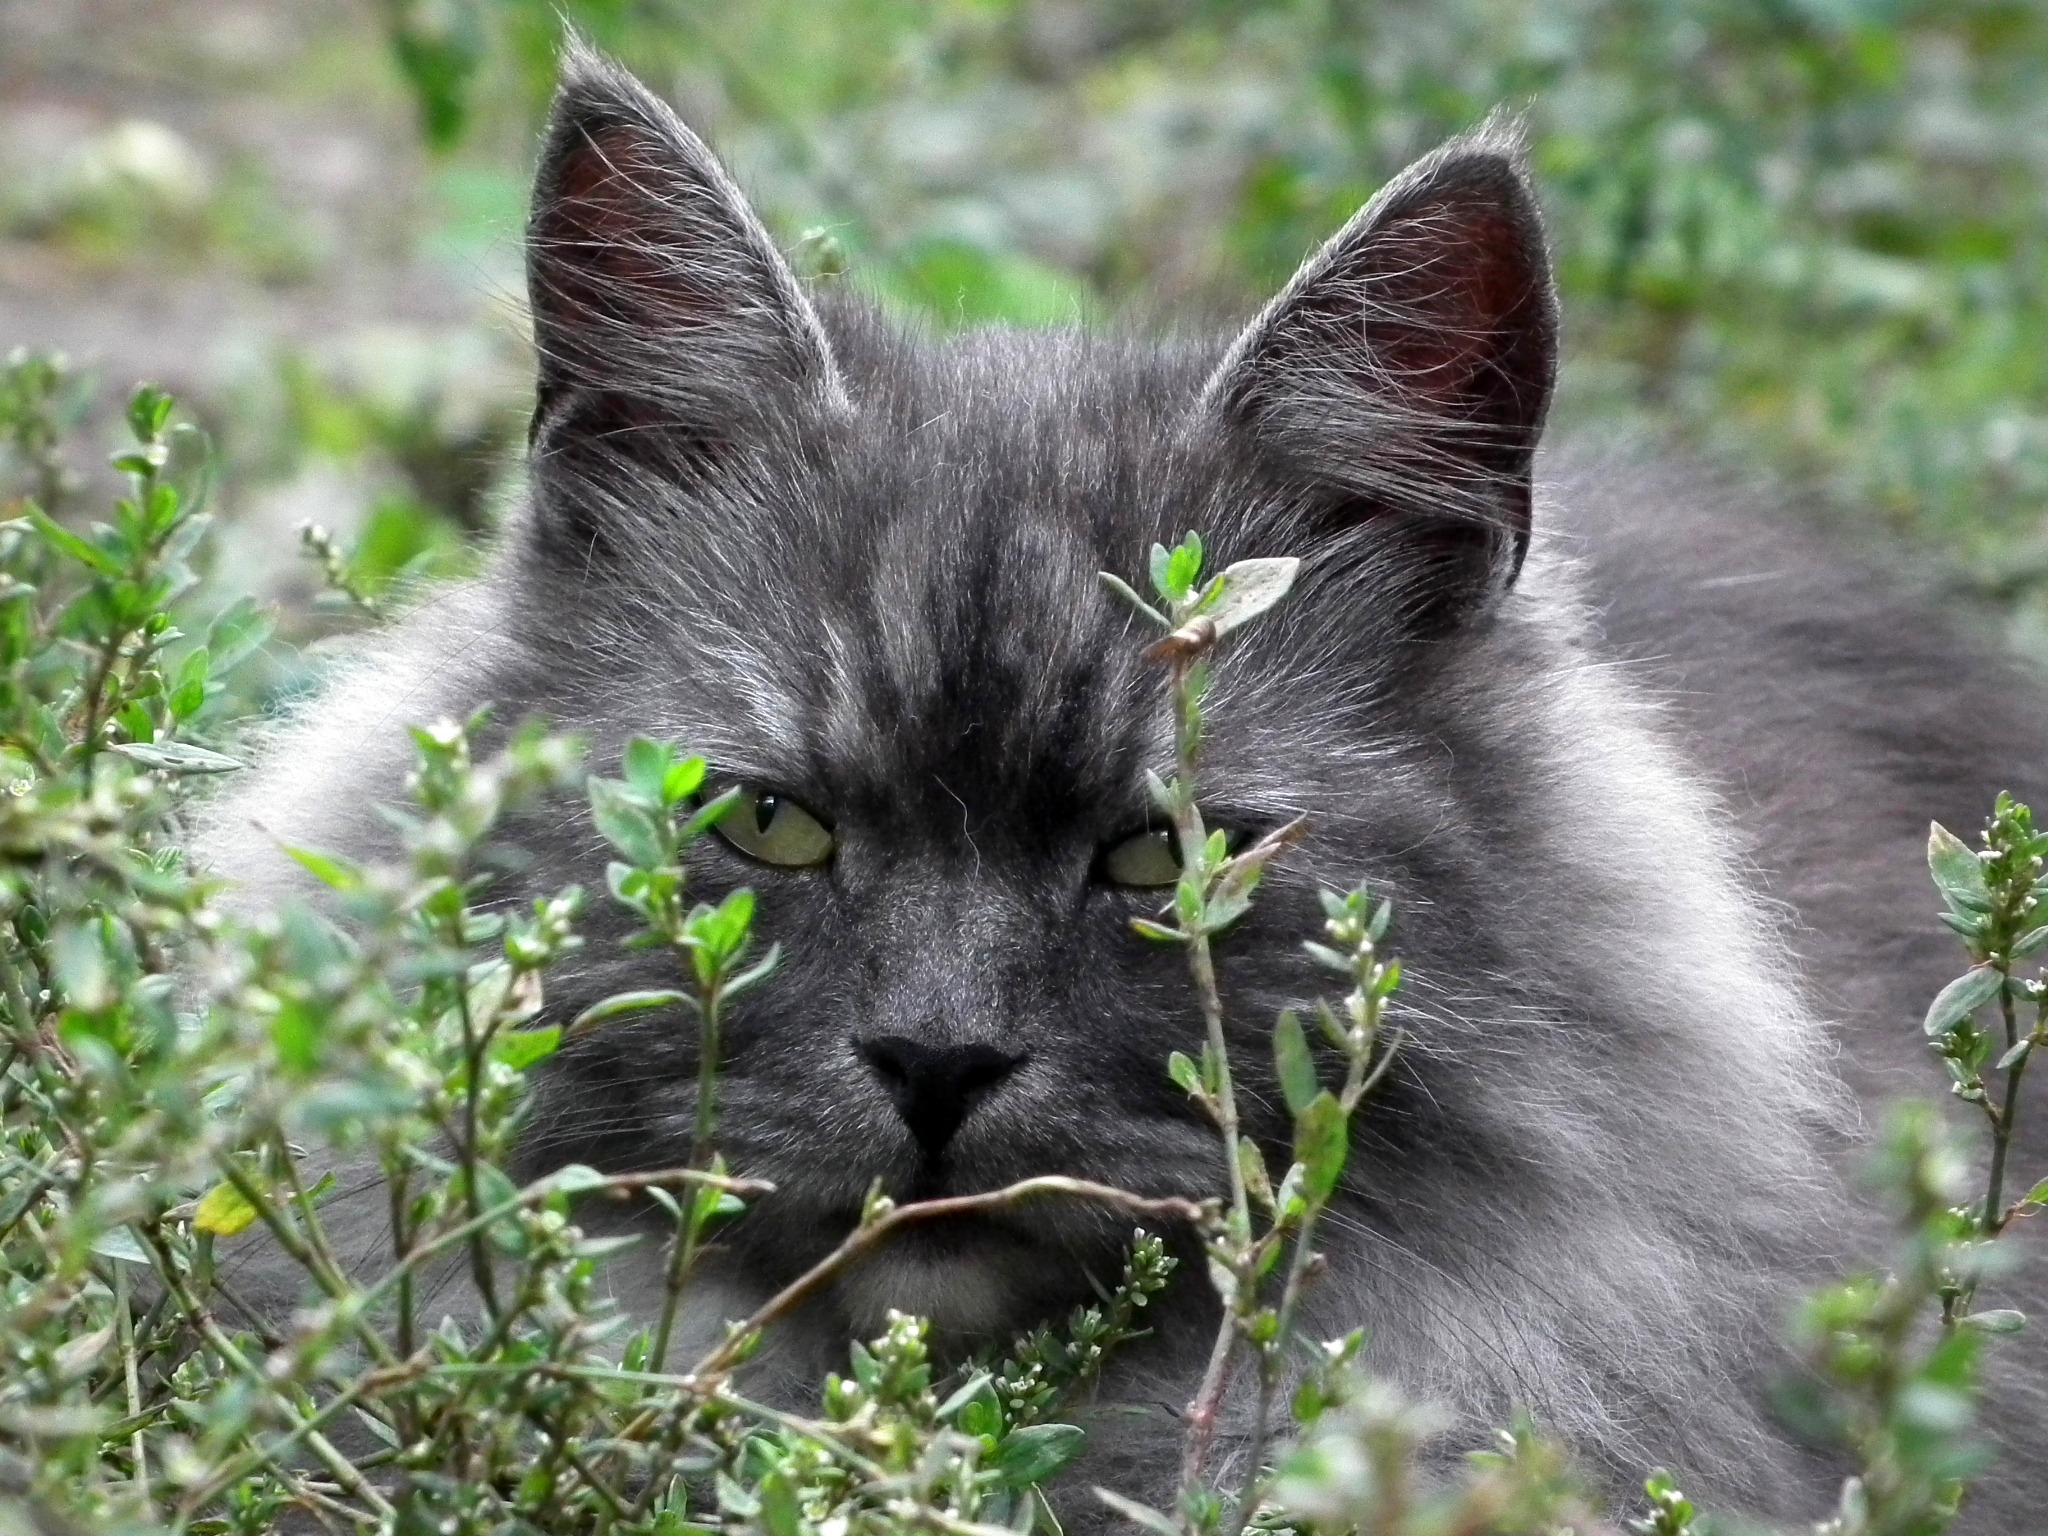 Grey spotted cat